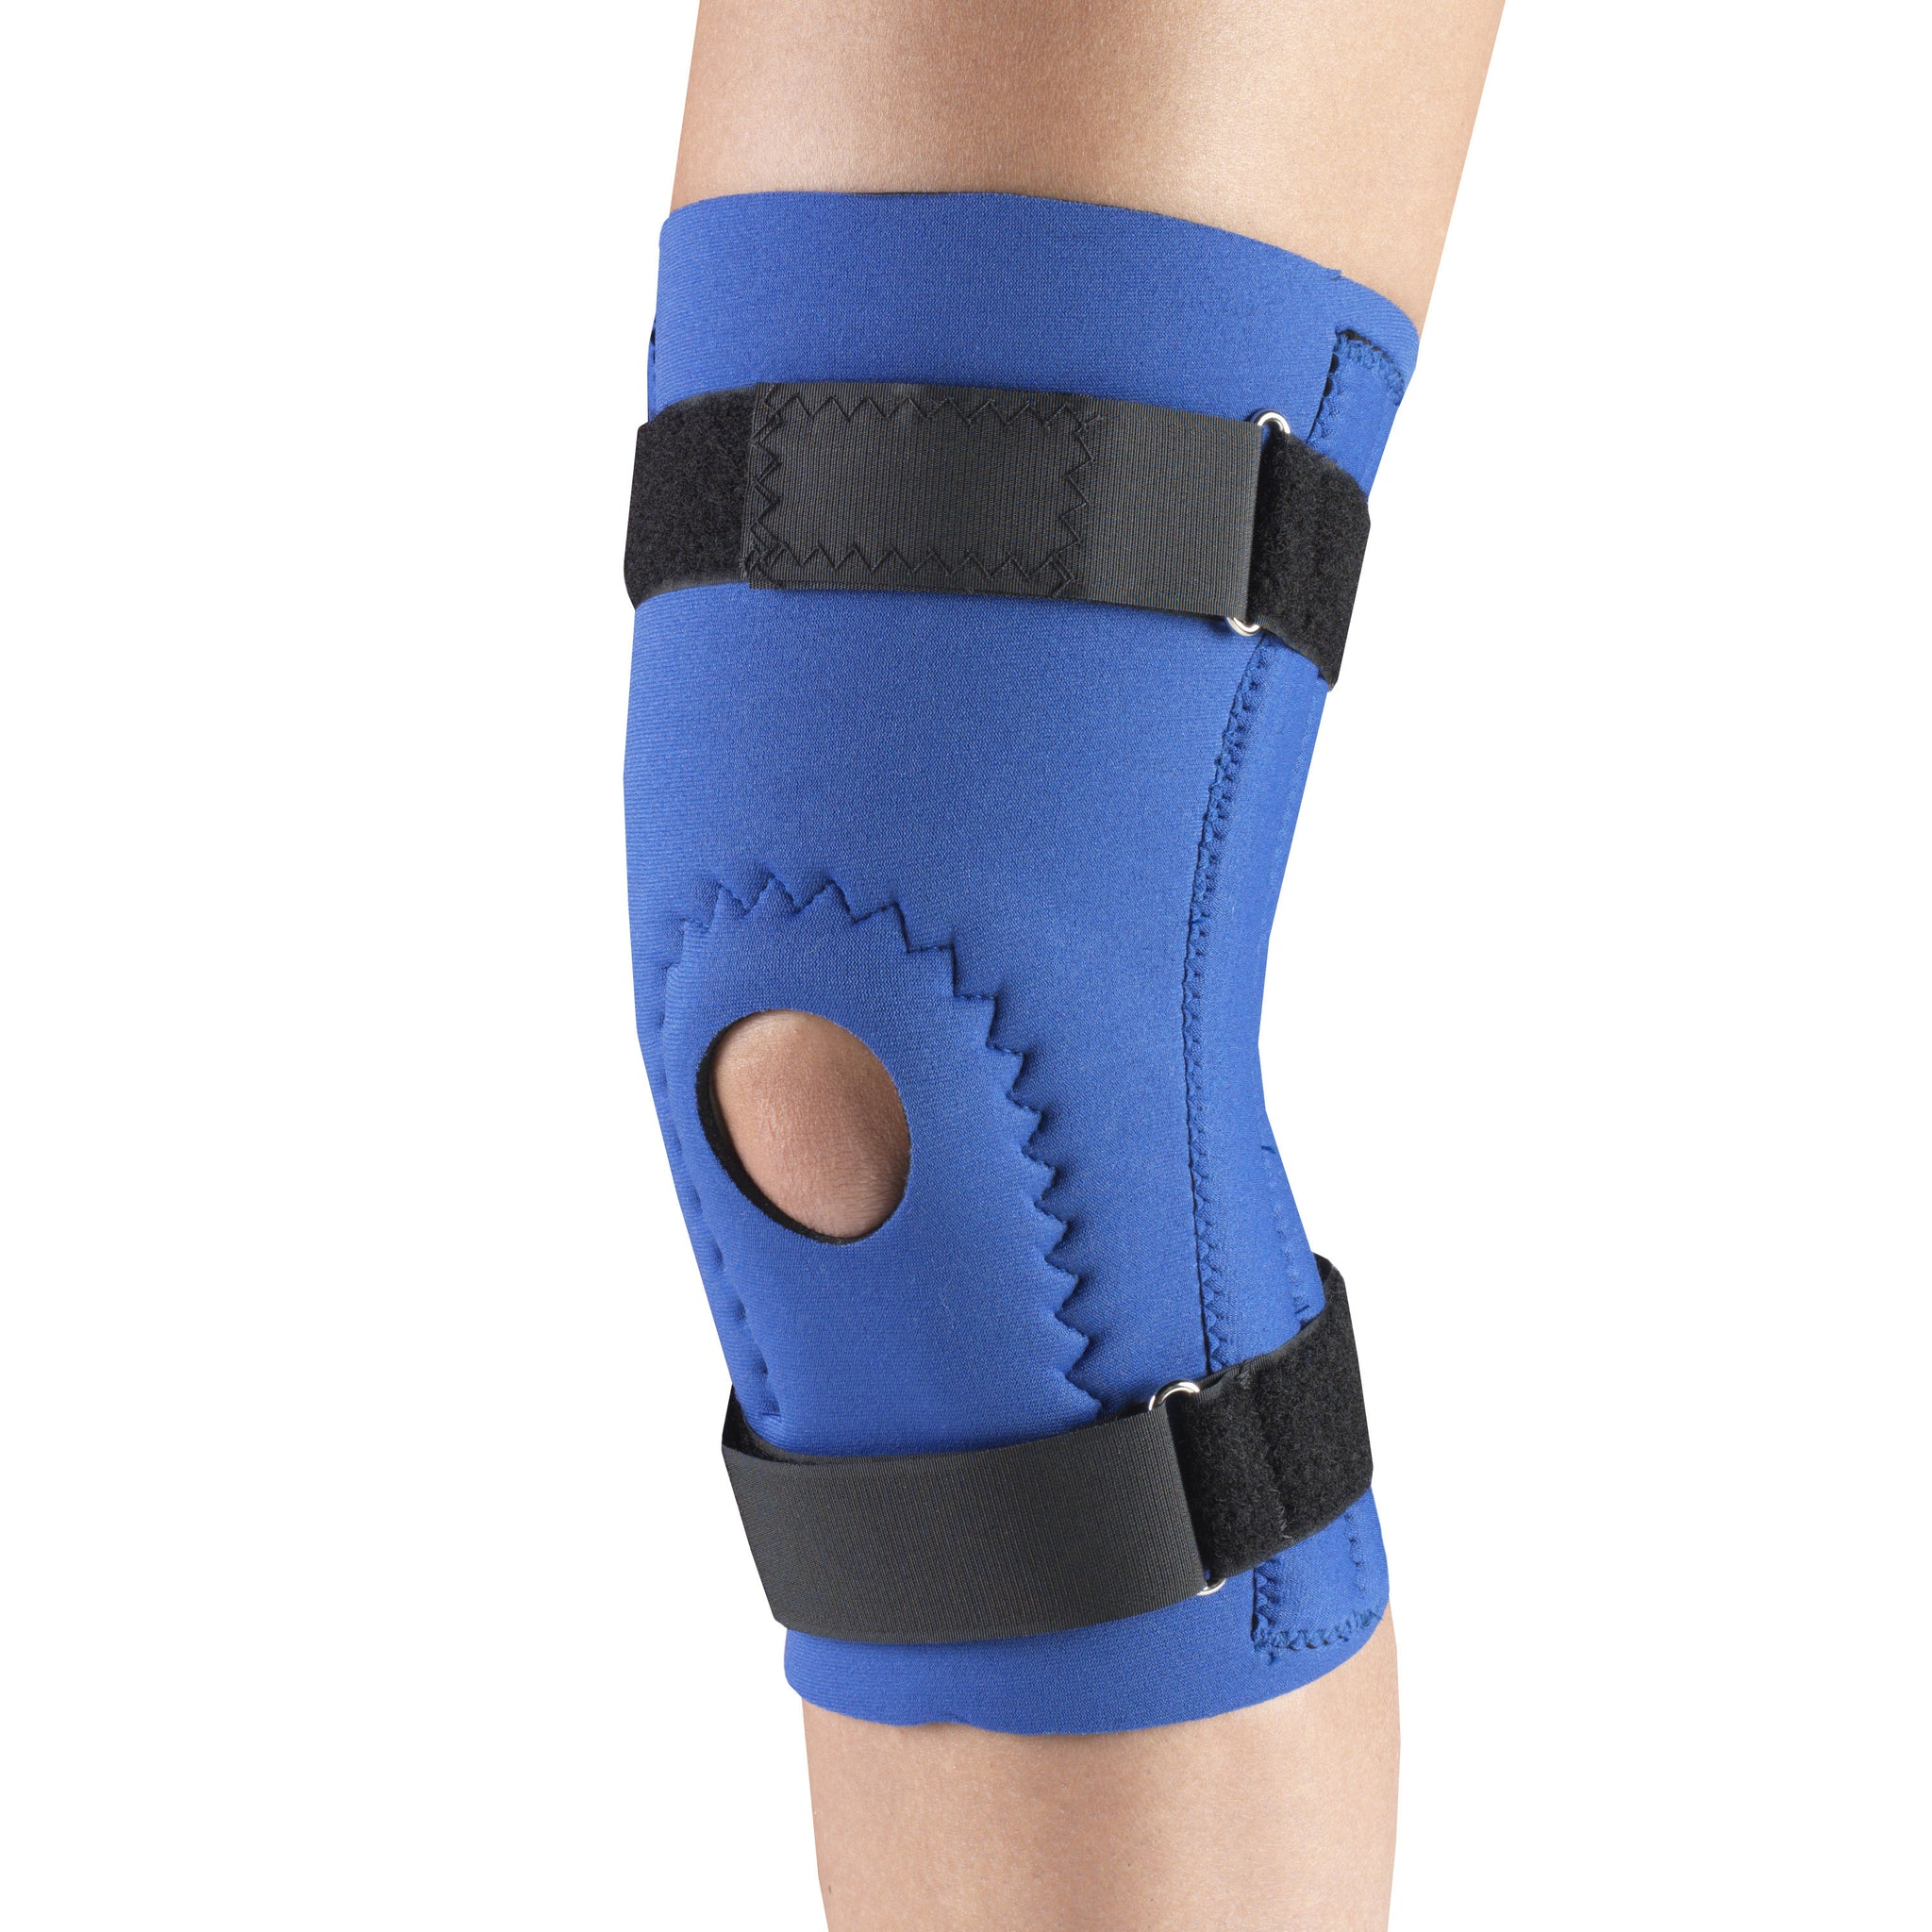 --Side of NEOPRENE KNEE SLEEVE - HOR-SHU PAD, SPIRAL STAYS--